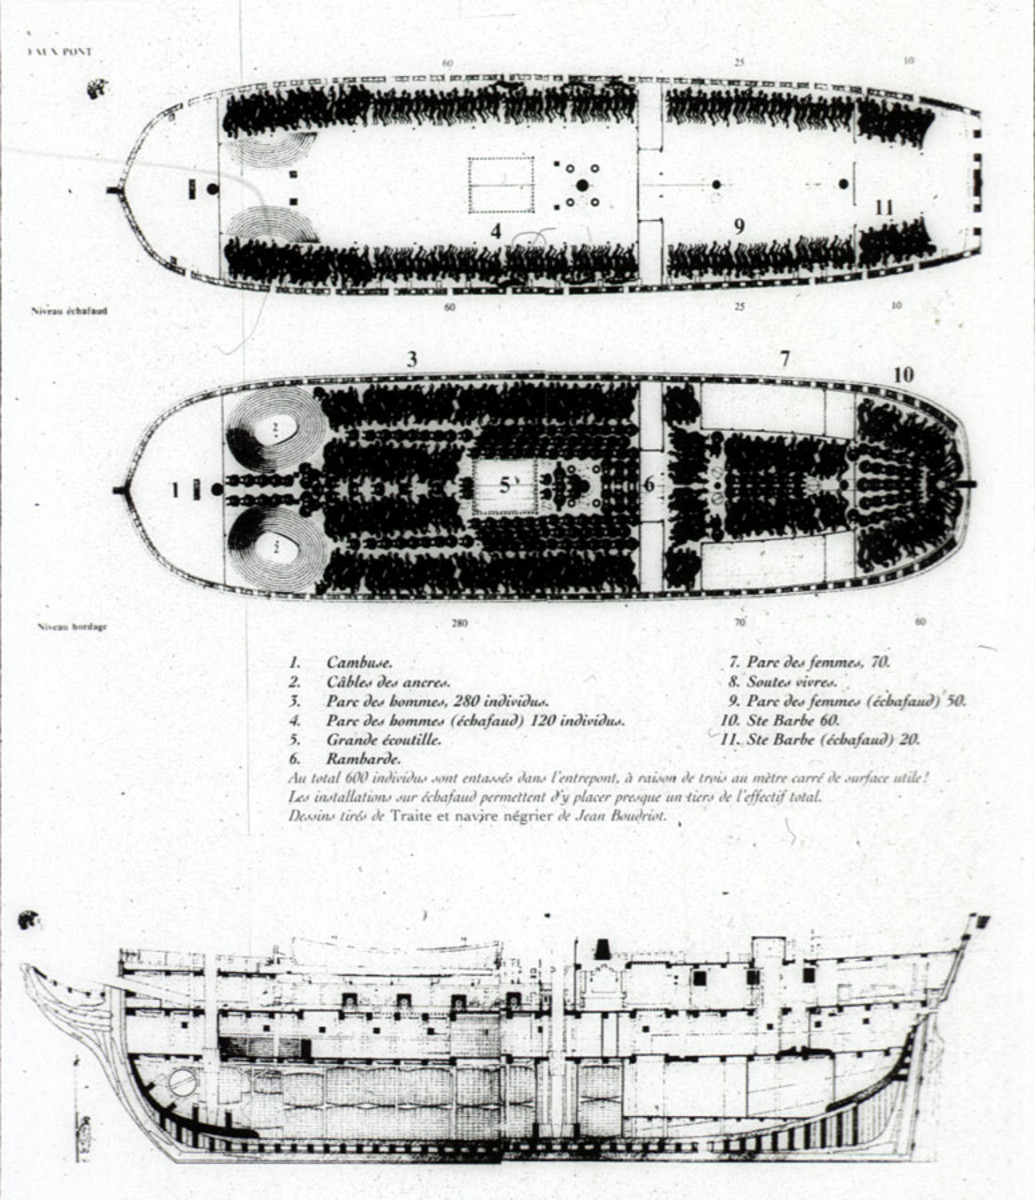 Diagramme of a slave ship. Image from Wikipedia